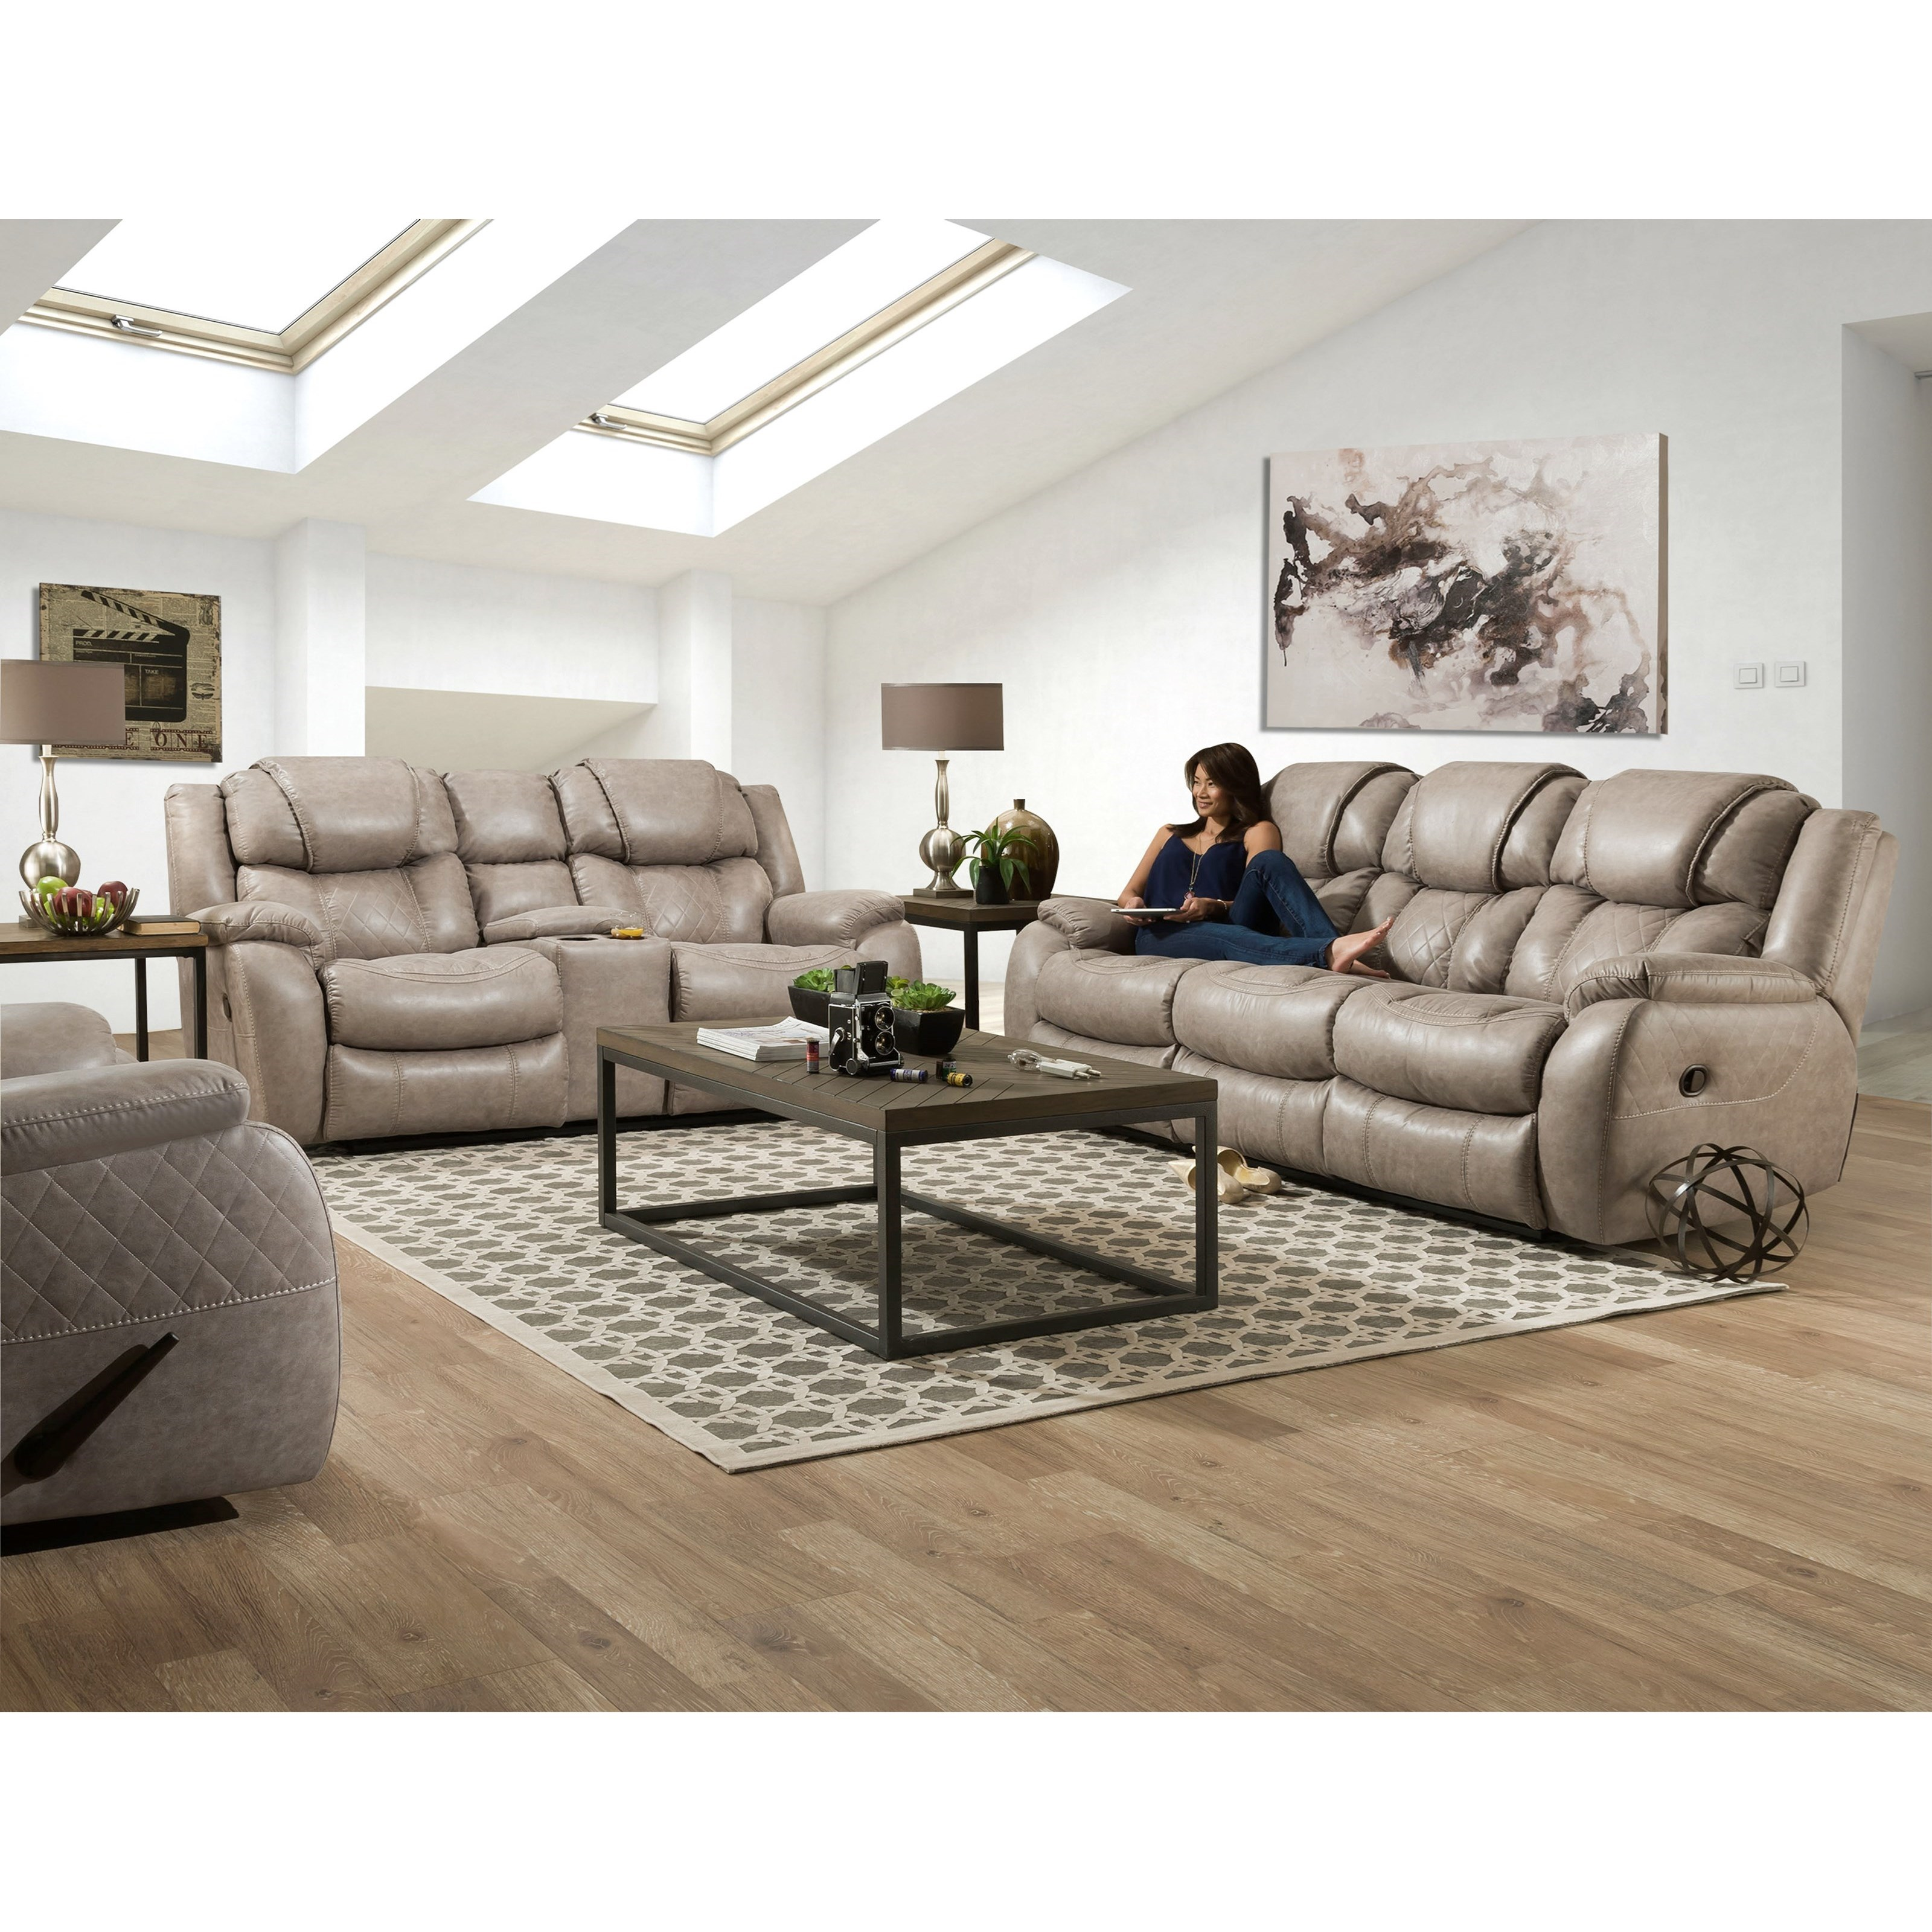 182 Reclining Living Room Group by HomeStretch at Suburban Furniture